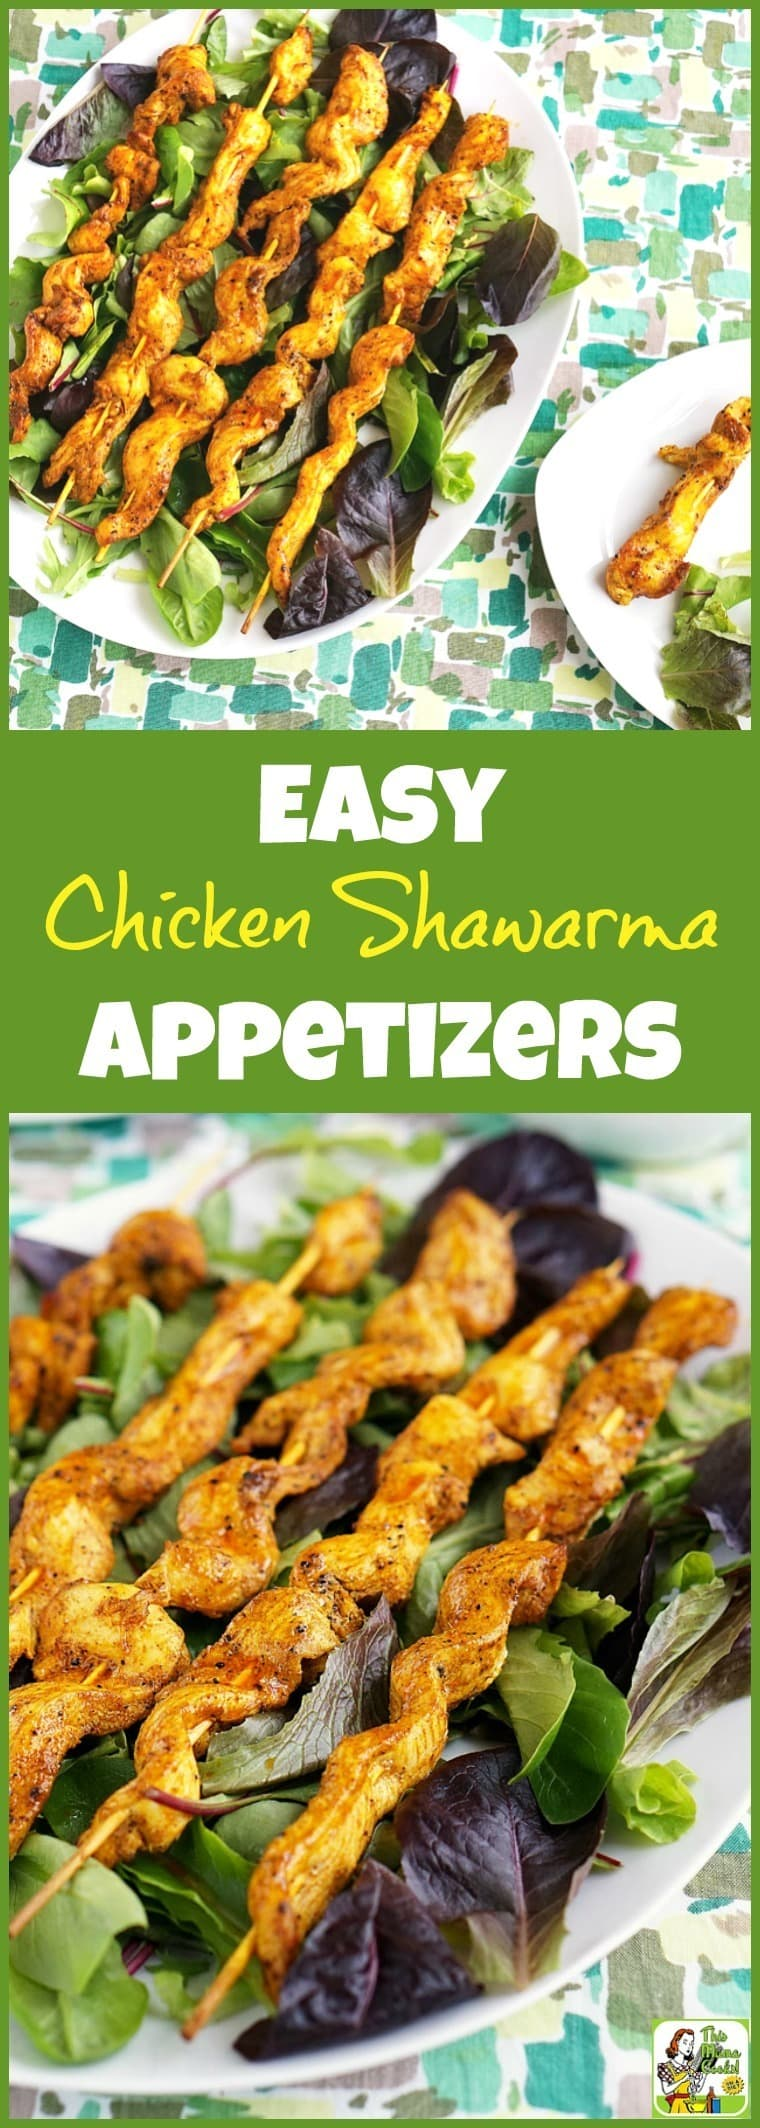 Looking for something different to serve at your party? Try Easy Chicken Shawarma Appetizers with Dipping Sauce! Click to get this easy chicken appetizer recipe. It's gluten free and healthy!